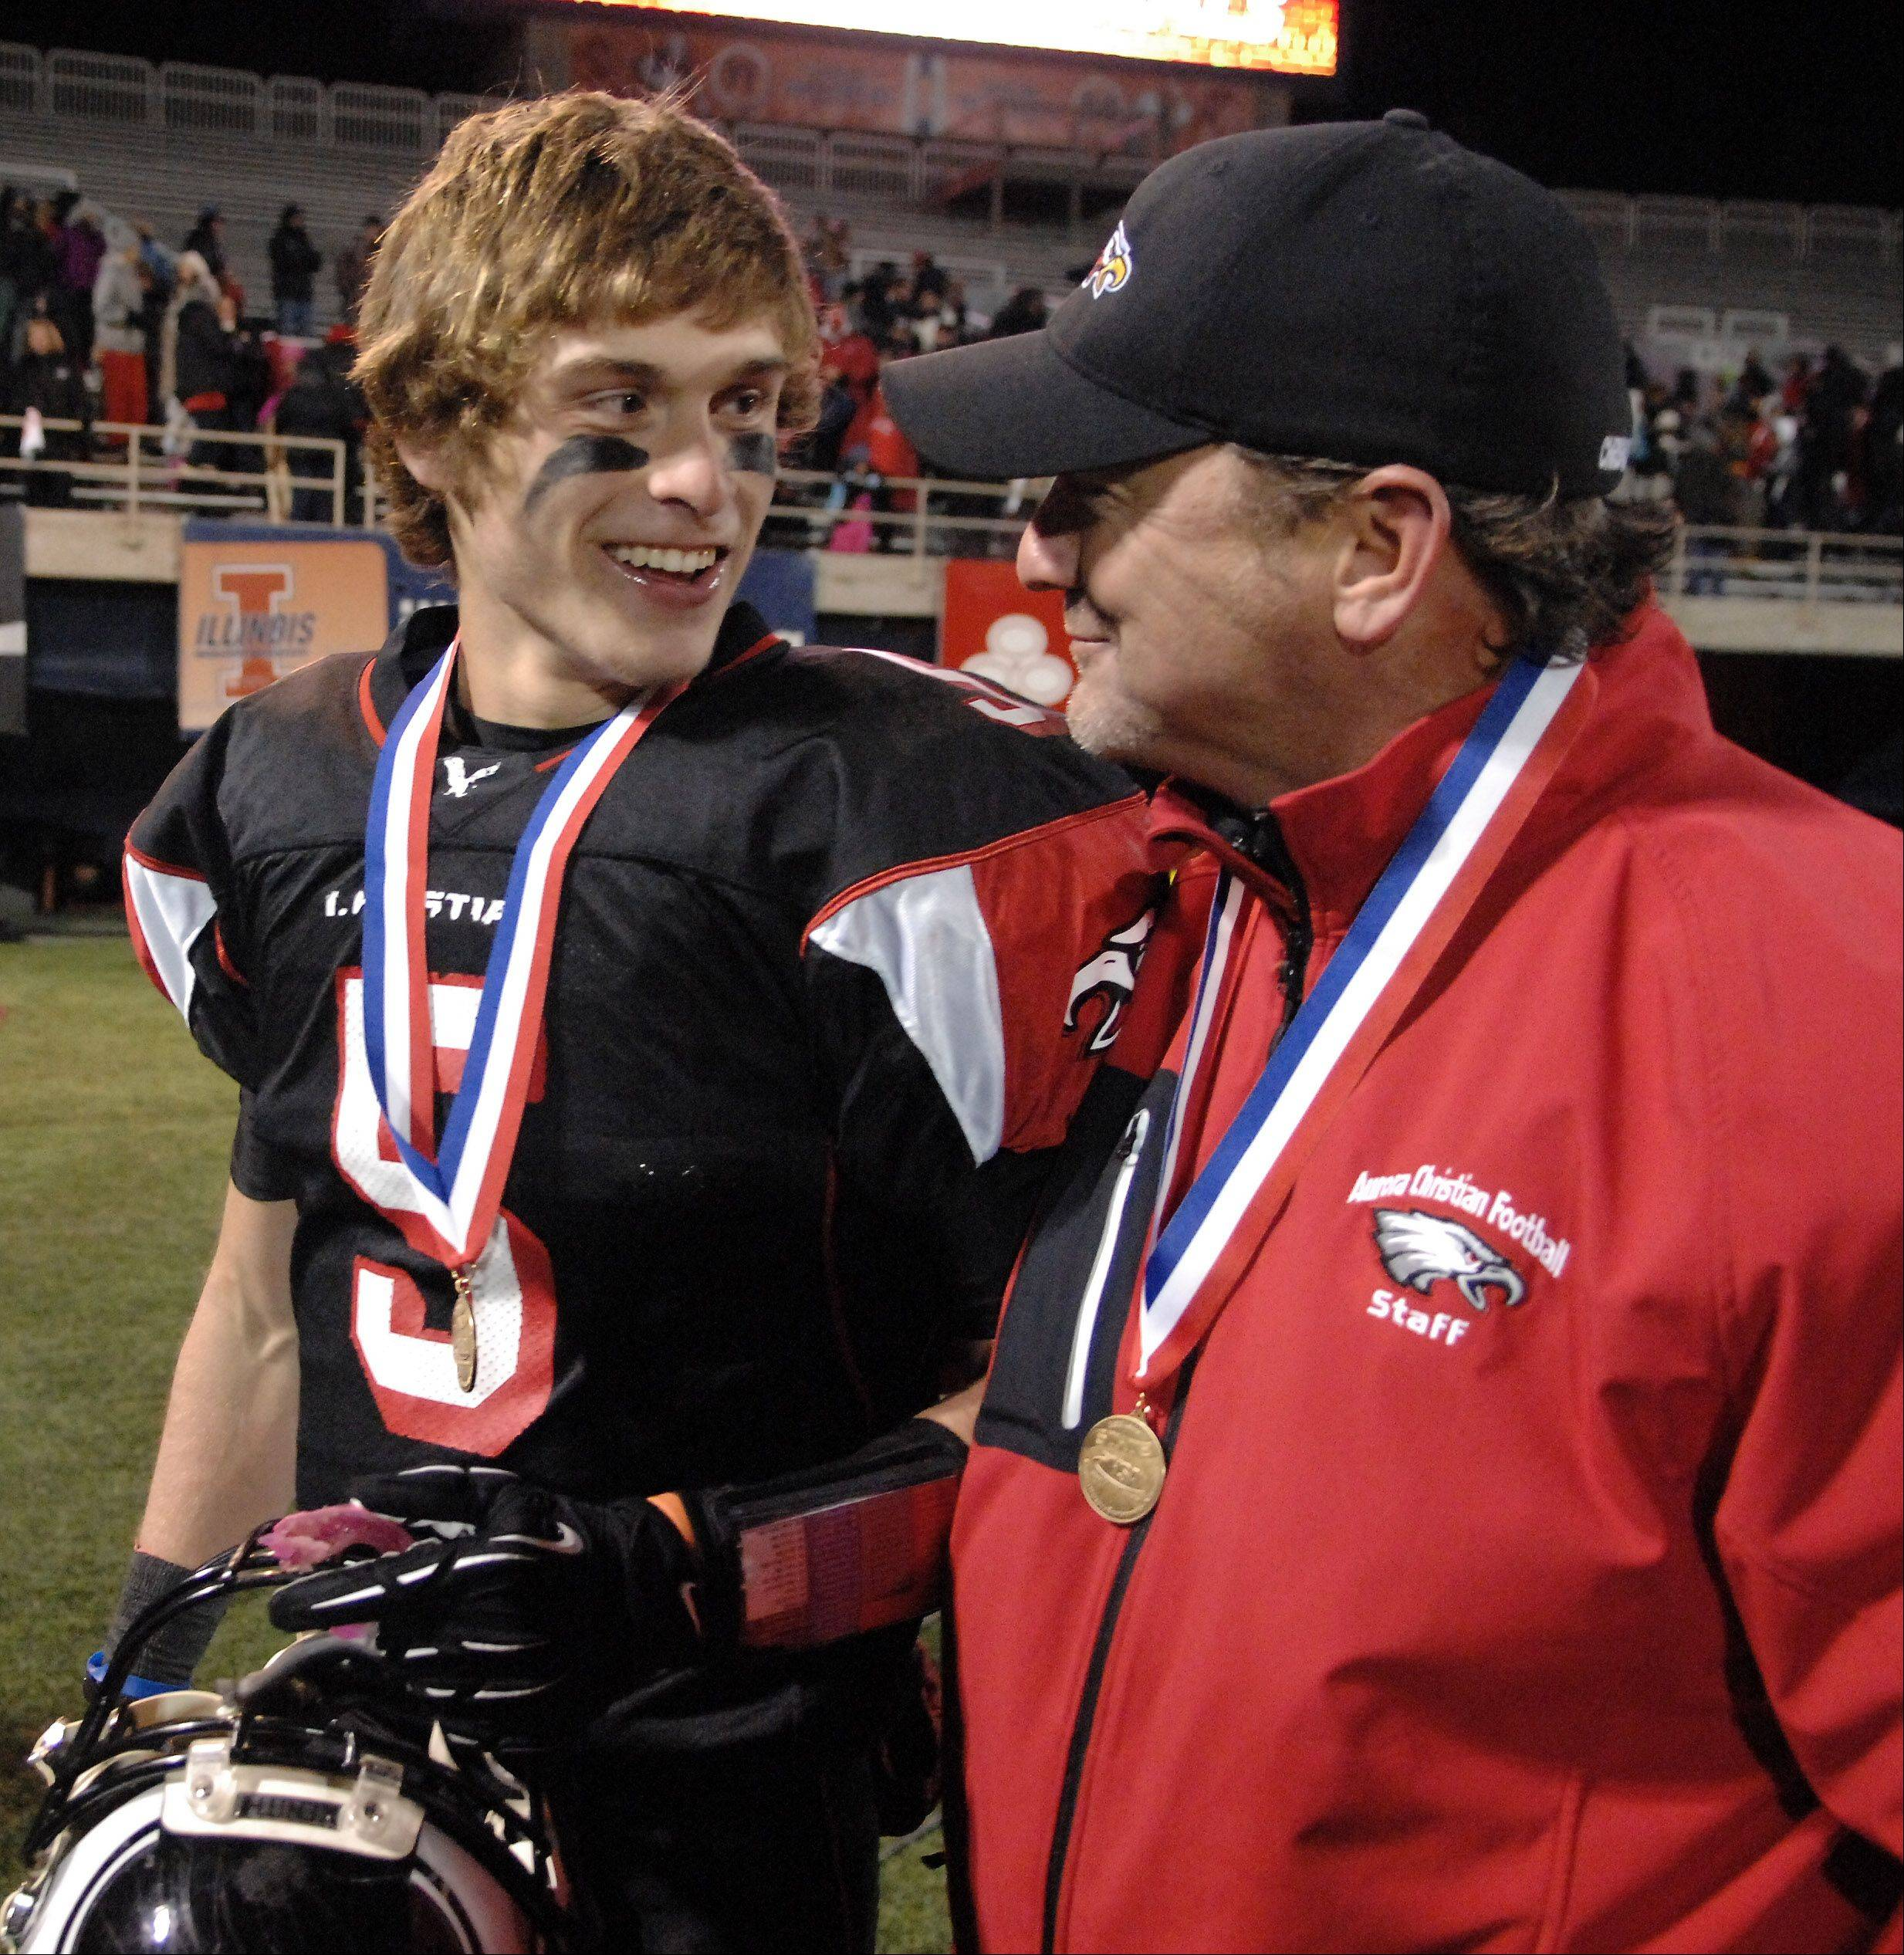 Rick West/rwest@dailyherald.com Aurora Christian's Noah Roberts and coach Don Beebe share a moment after the trophy presentation following their win over Tolono Unity during Friday's Class 3A state championship game at Memorial Stadium in Champaign.